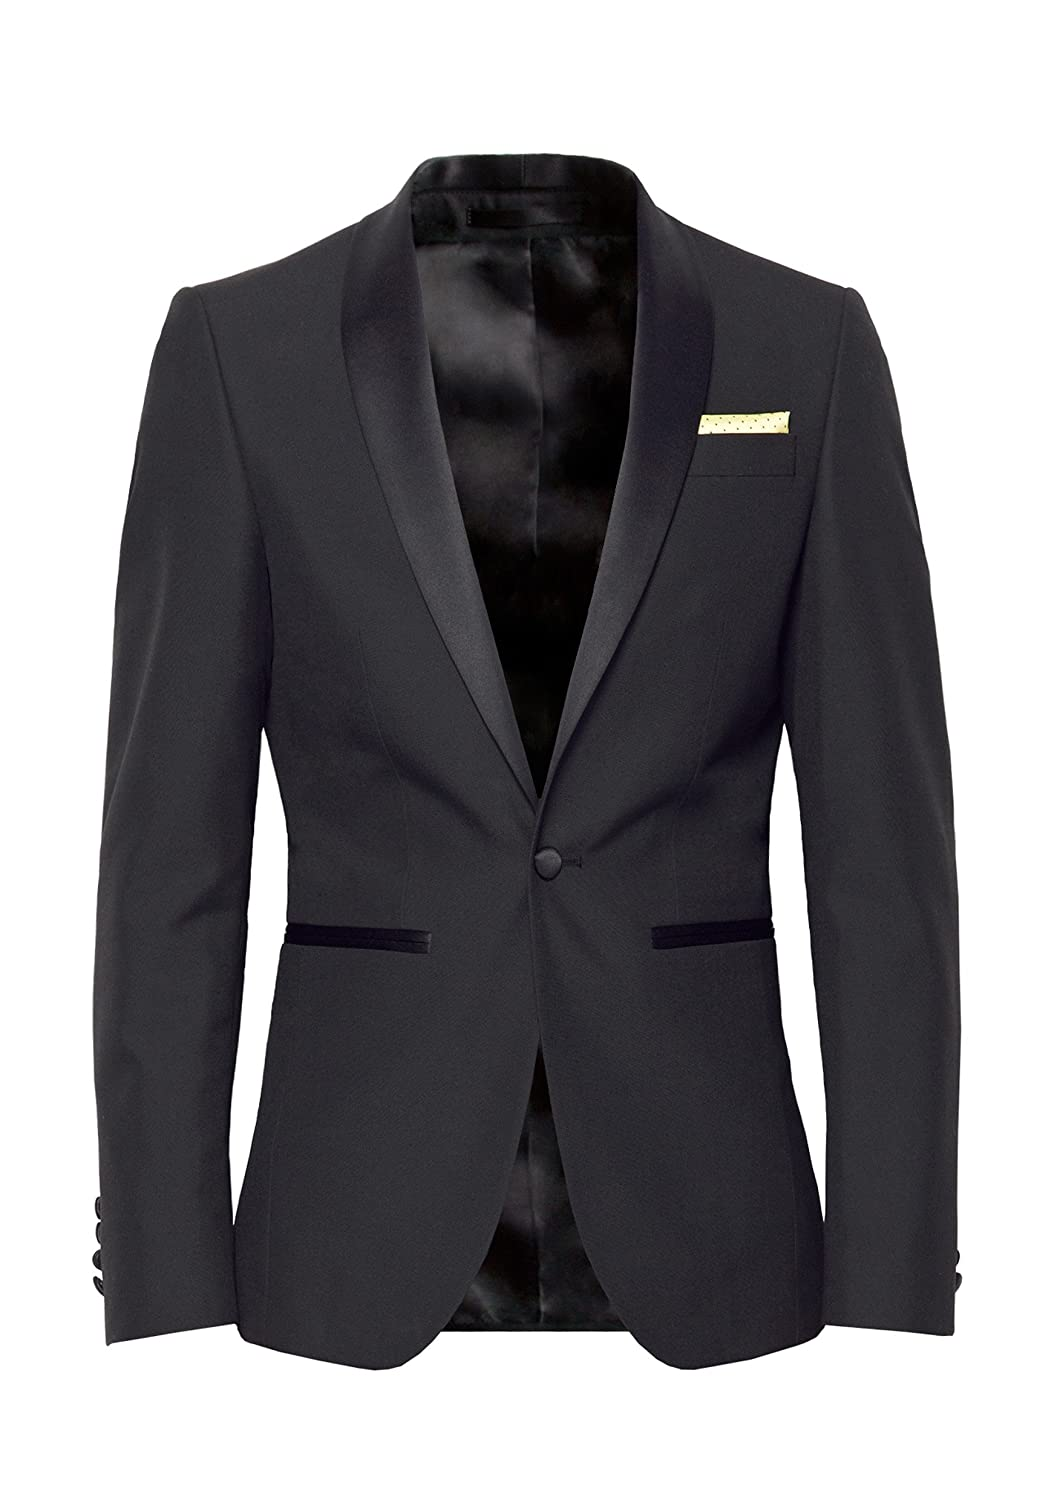 Johnny Tuxedo - Slim Fit Single-Breasted Dinner Tuxedo Jacket with Shawl Lapel and One-Button Fastening - Perfect for Proms, Wedding Receptions & Black Tie Events